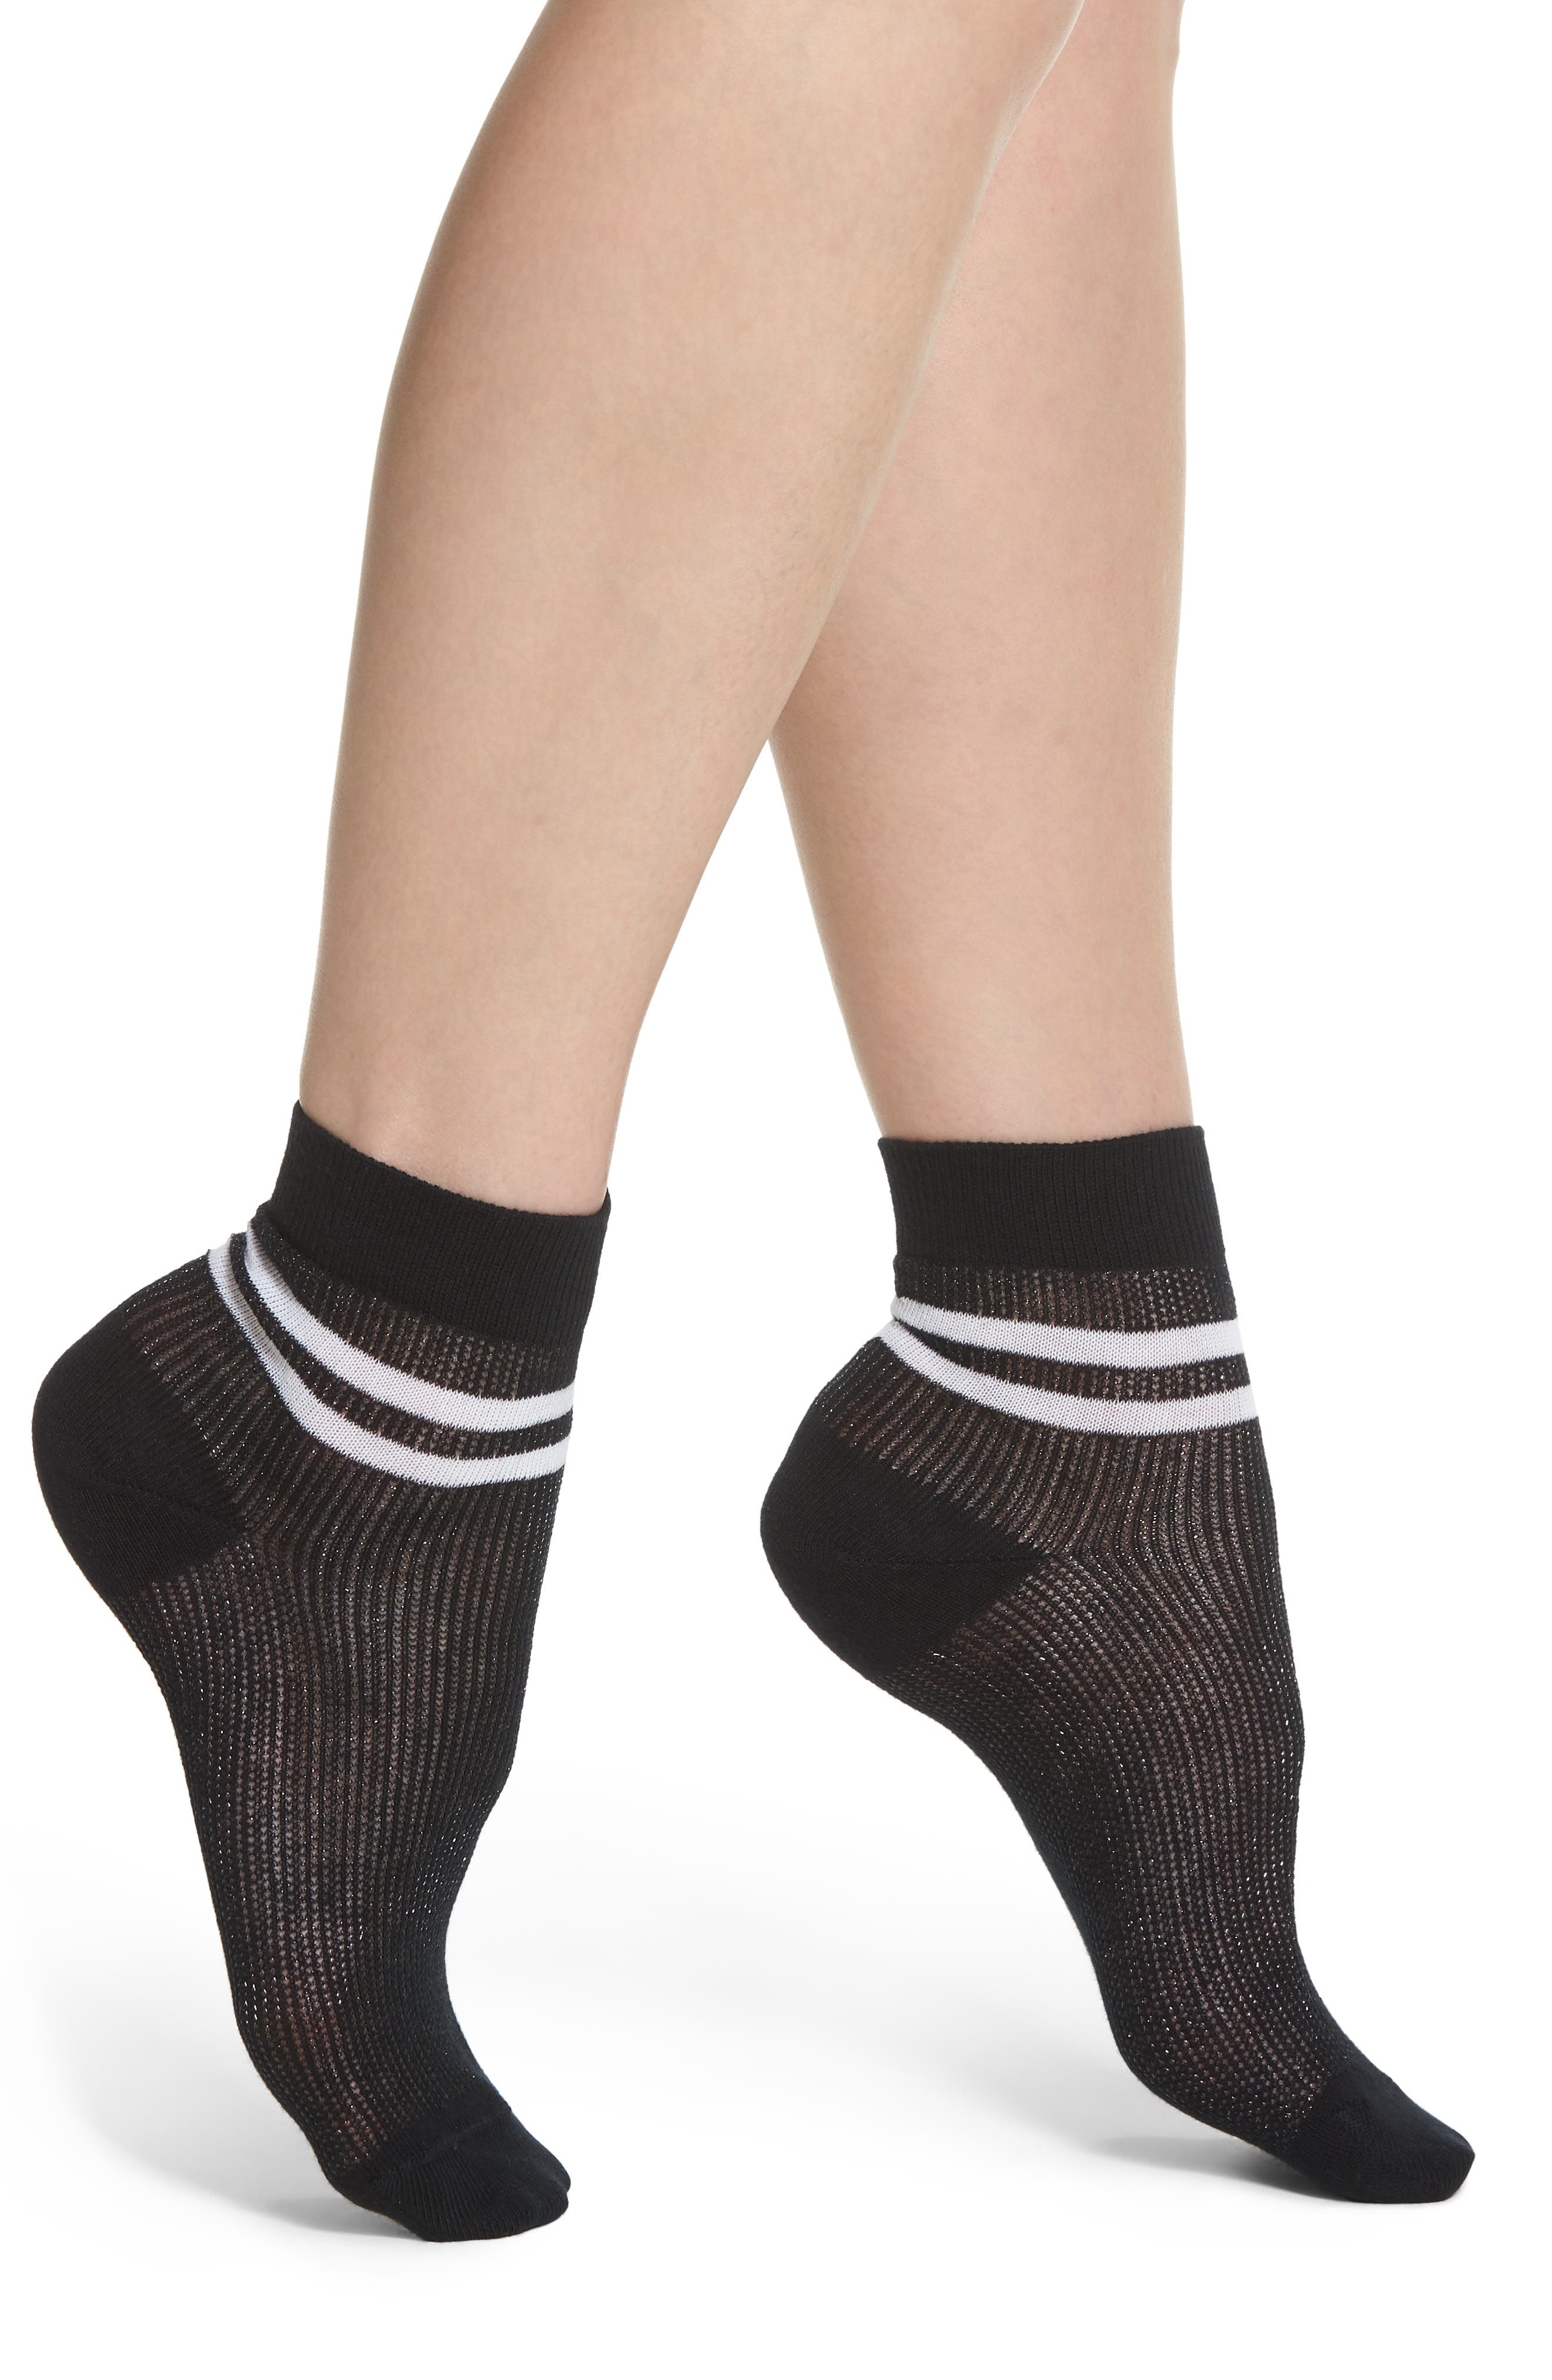 Varsity Ankle Socks,                         Main,                         color, 001